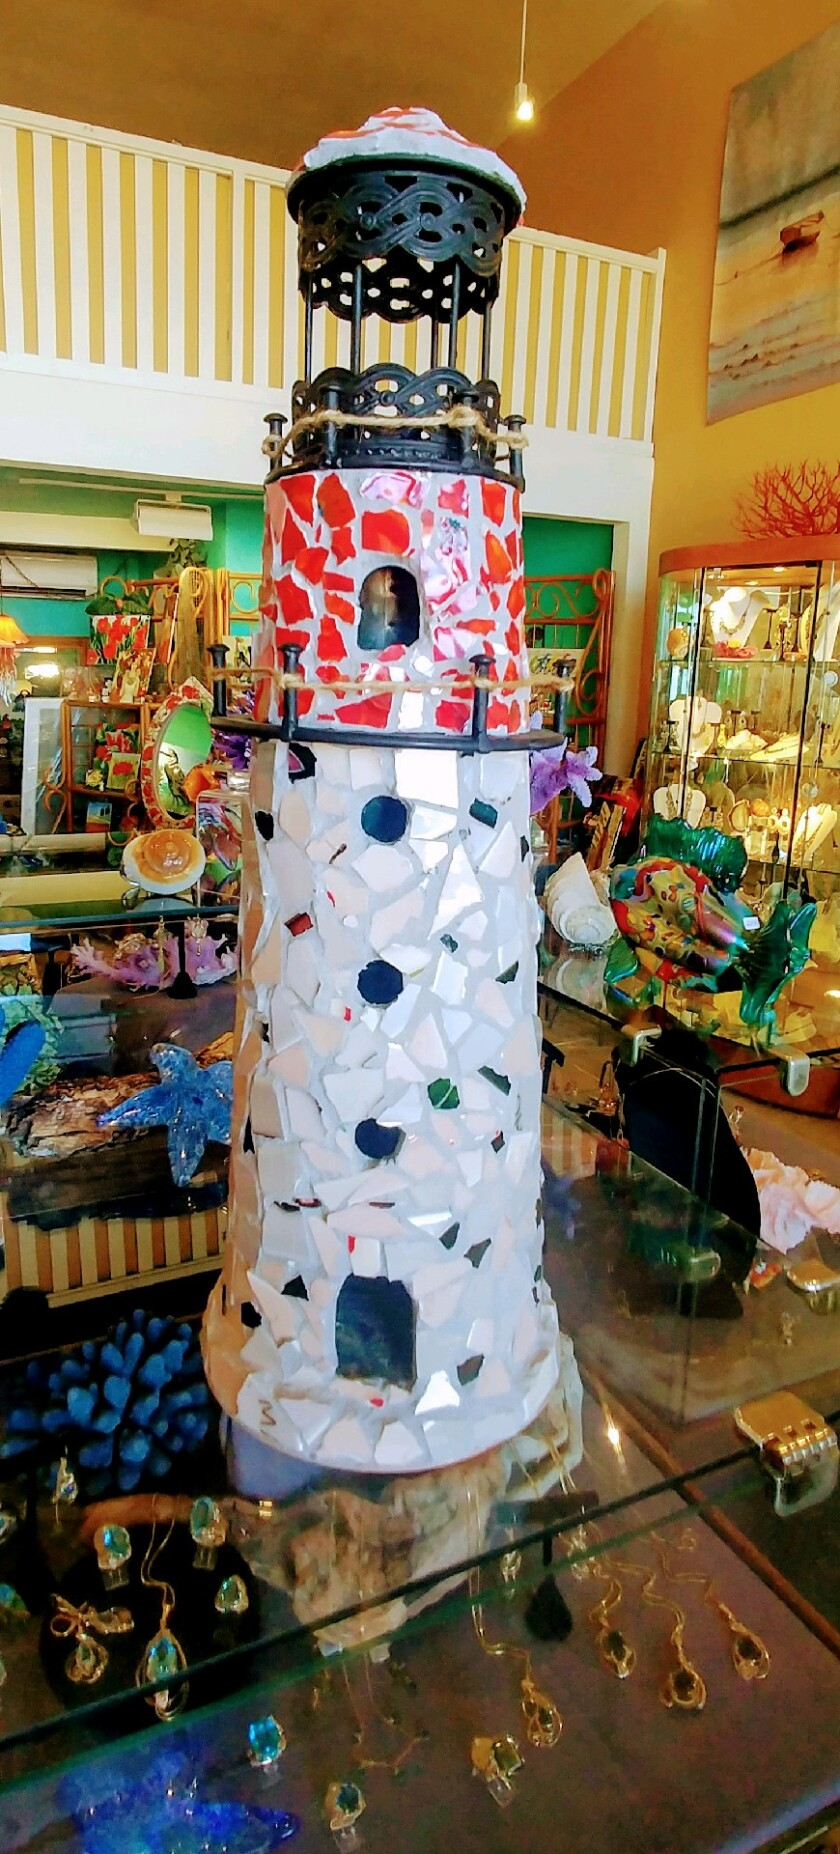 A mosaic lighthouse approximately 2 ½ to 3 feet high.